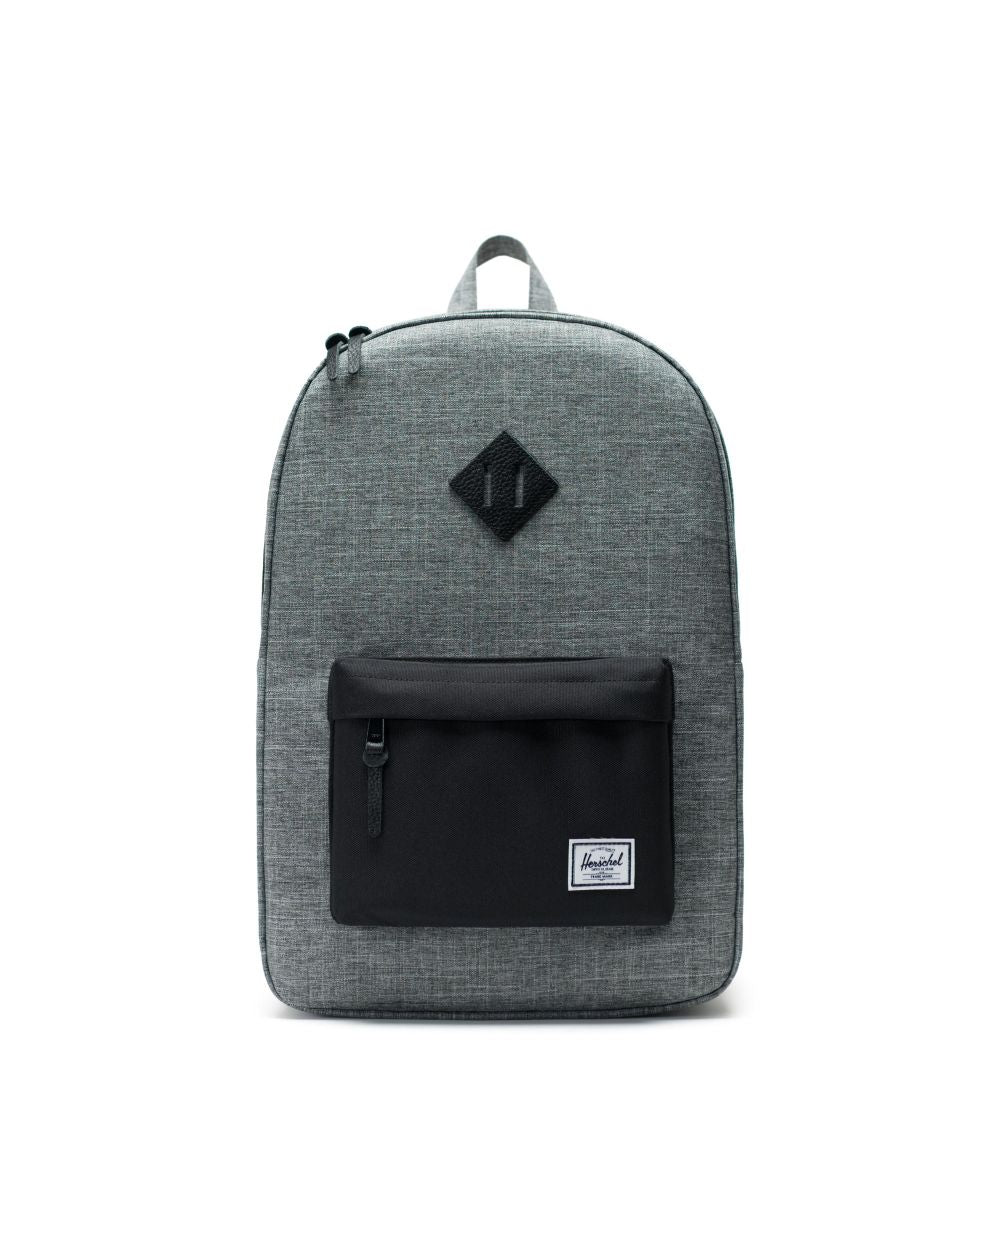 Heritage Backpack - Raven Crosshatch/Black